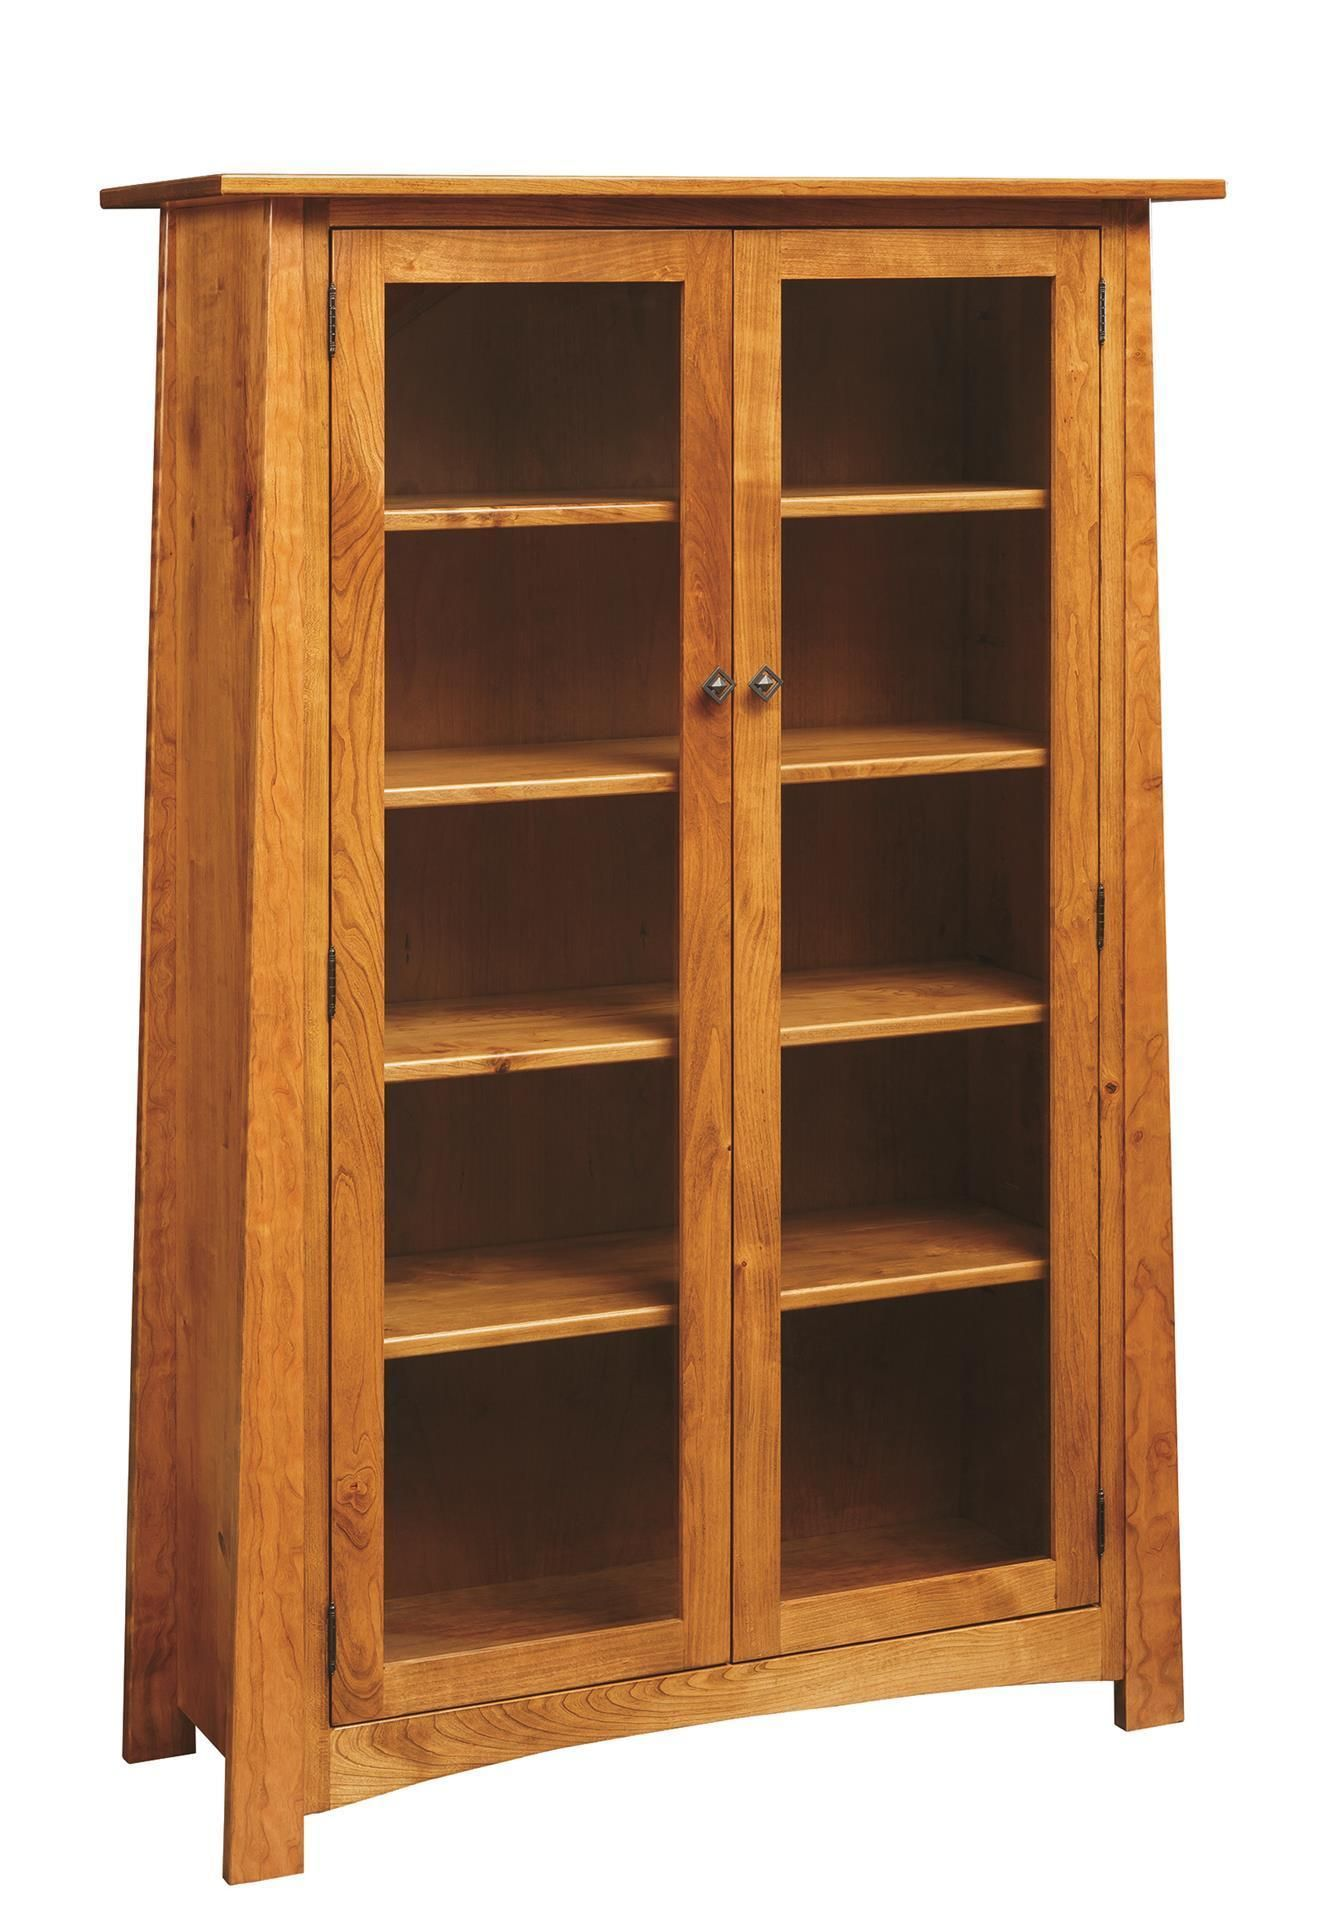 Amish Craftsmen Bookcase With Glass Doors In 2020 Bookcase With